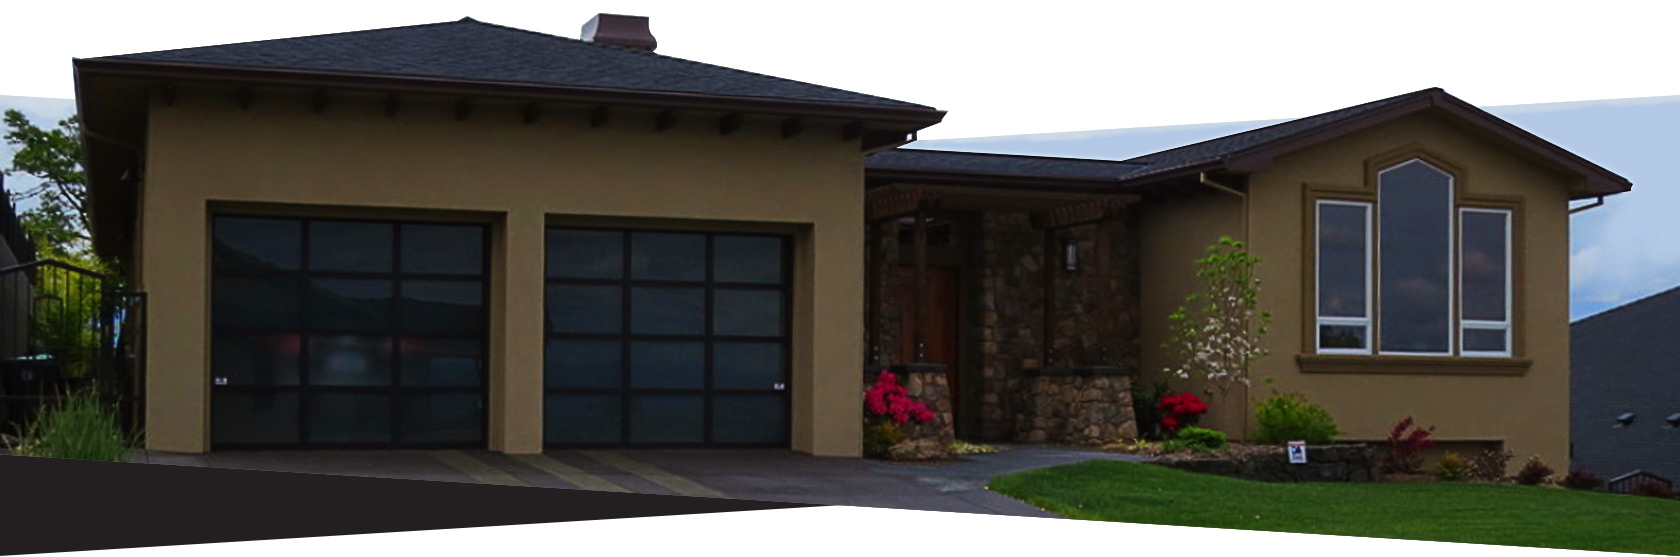 Garage Doors Medford Garage Door Repair Amp Installation